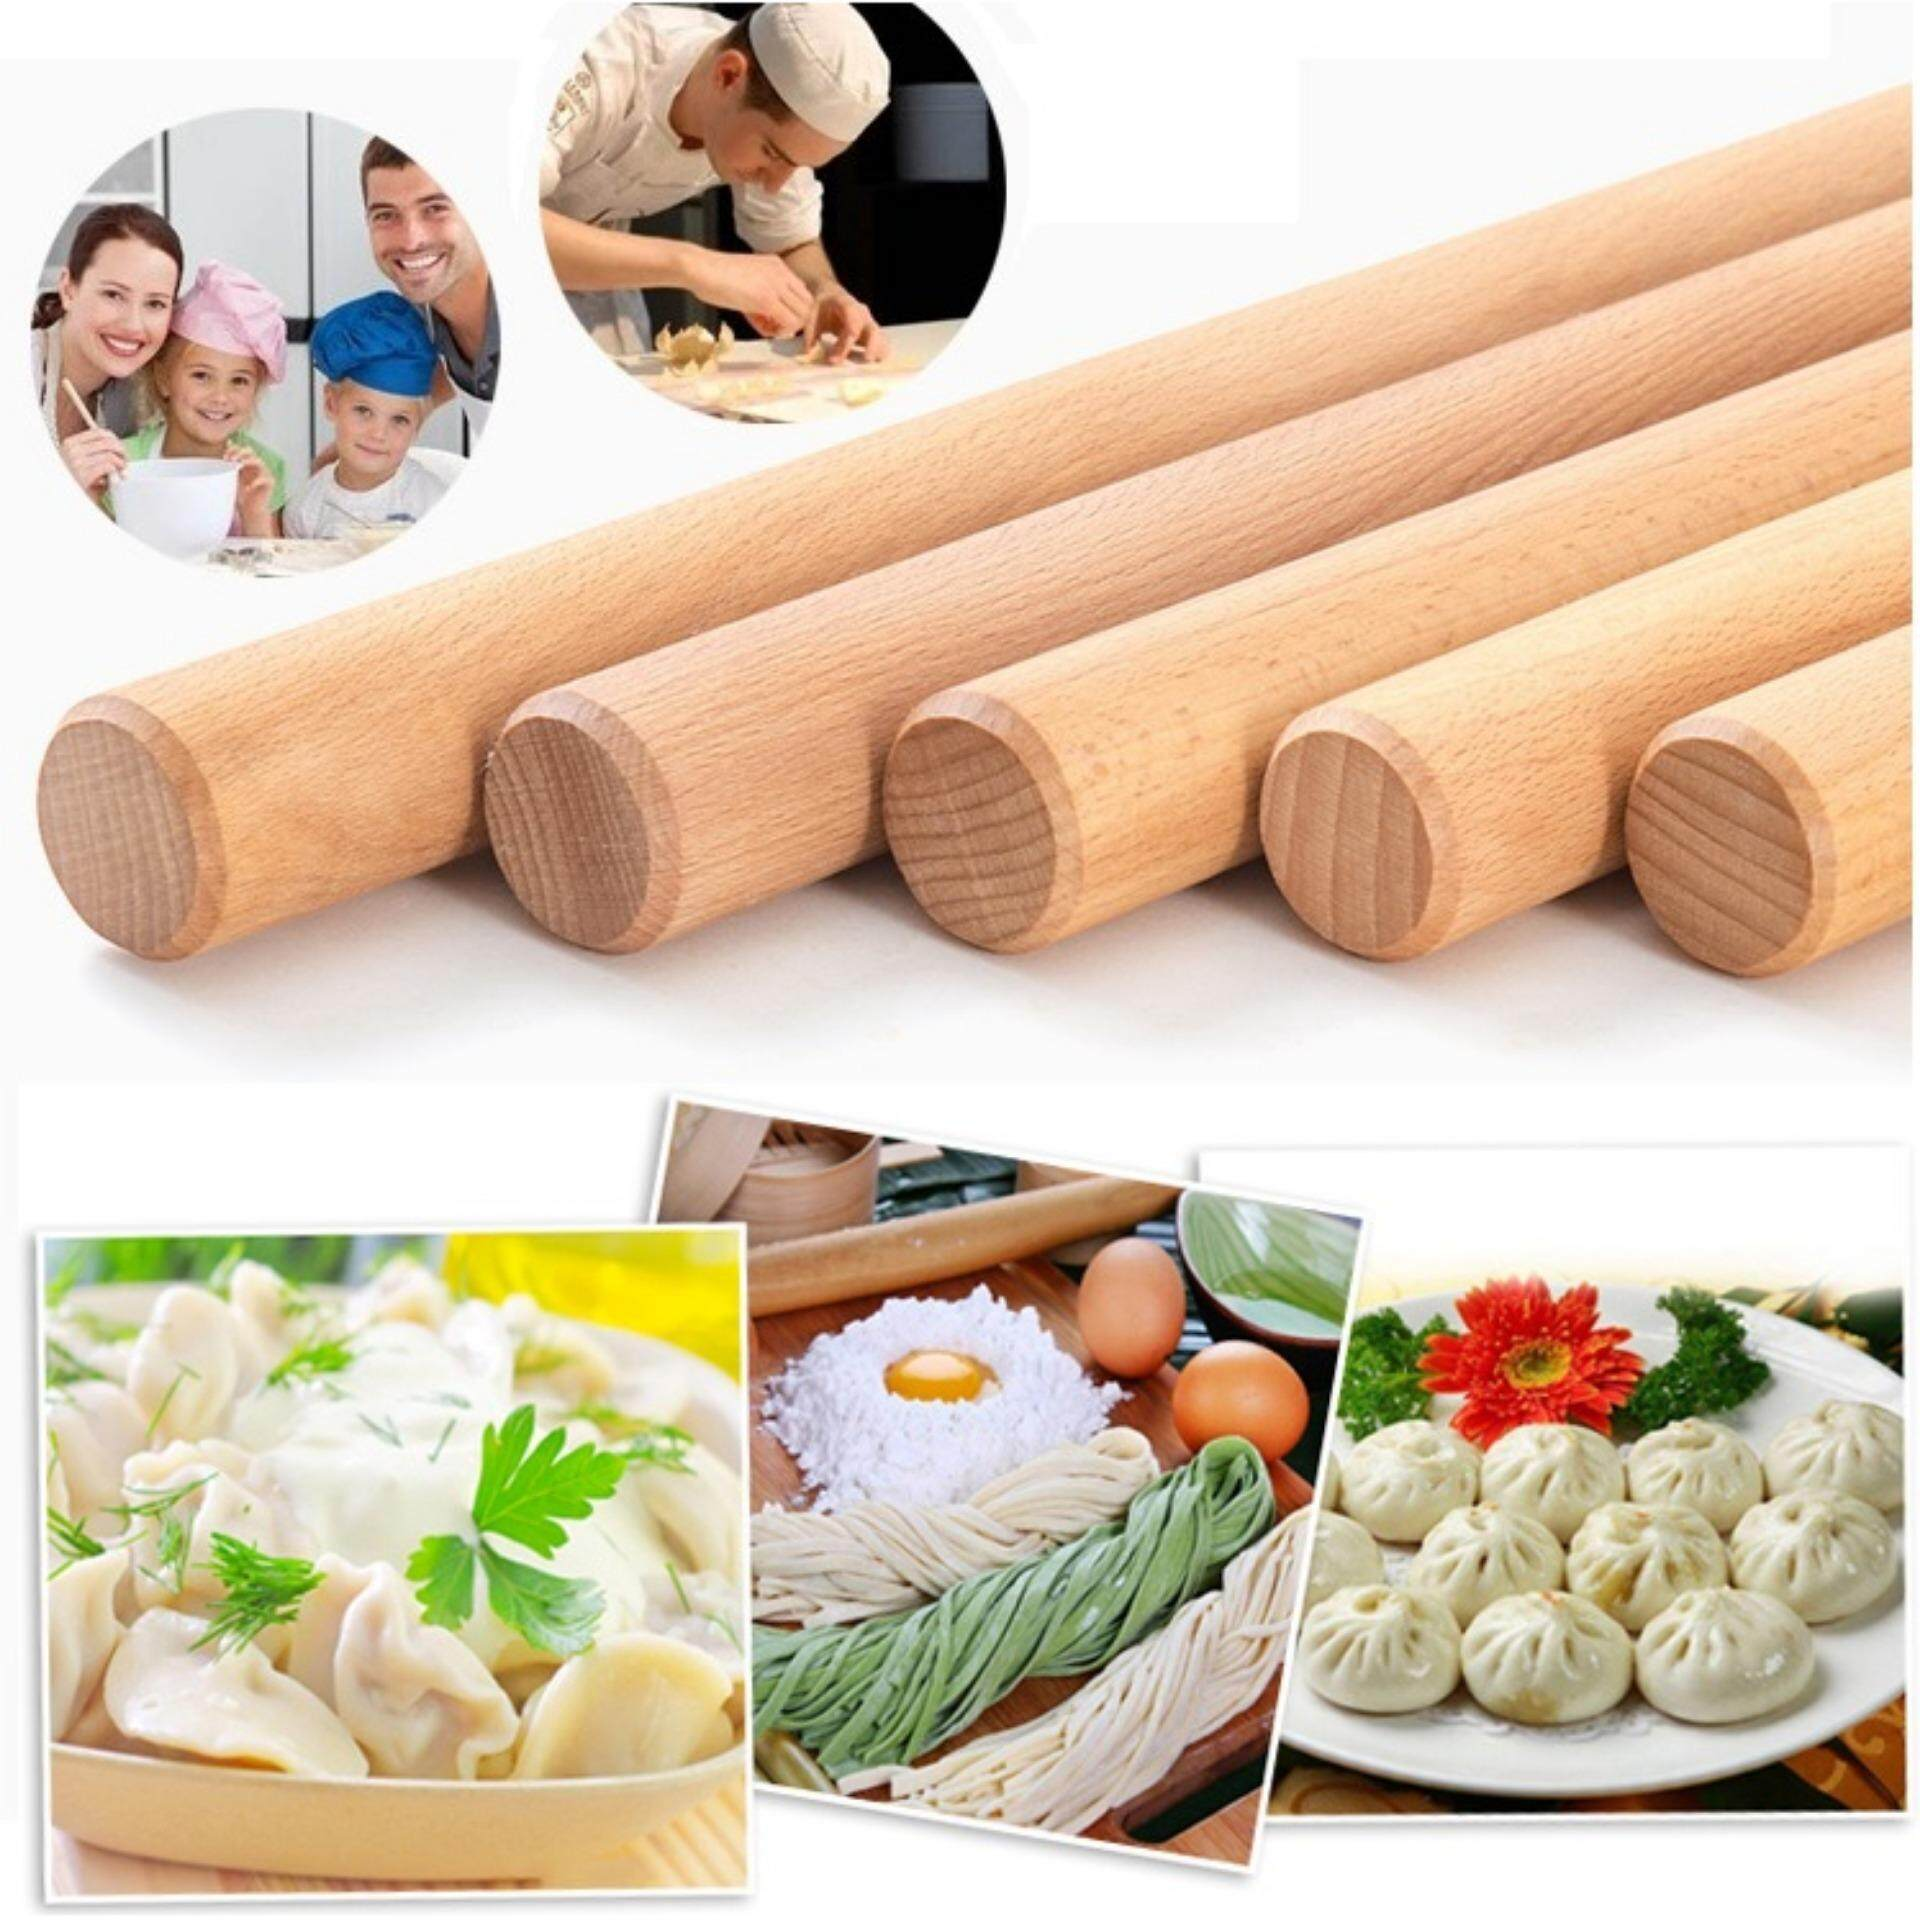 Wooden Flour Dough Rolling Pin Roller Stick 9.2 Inch Length Wood Color - intl